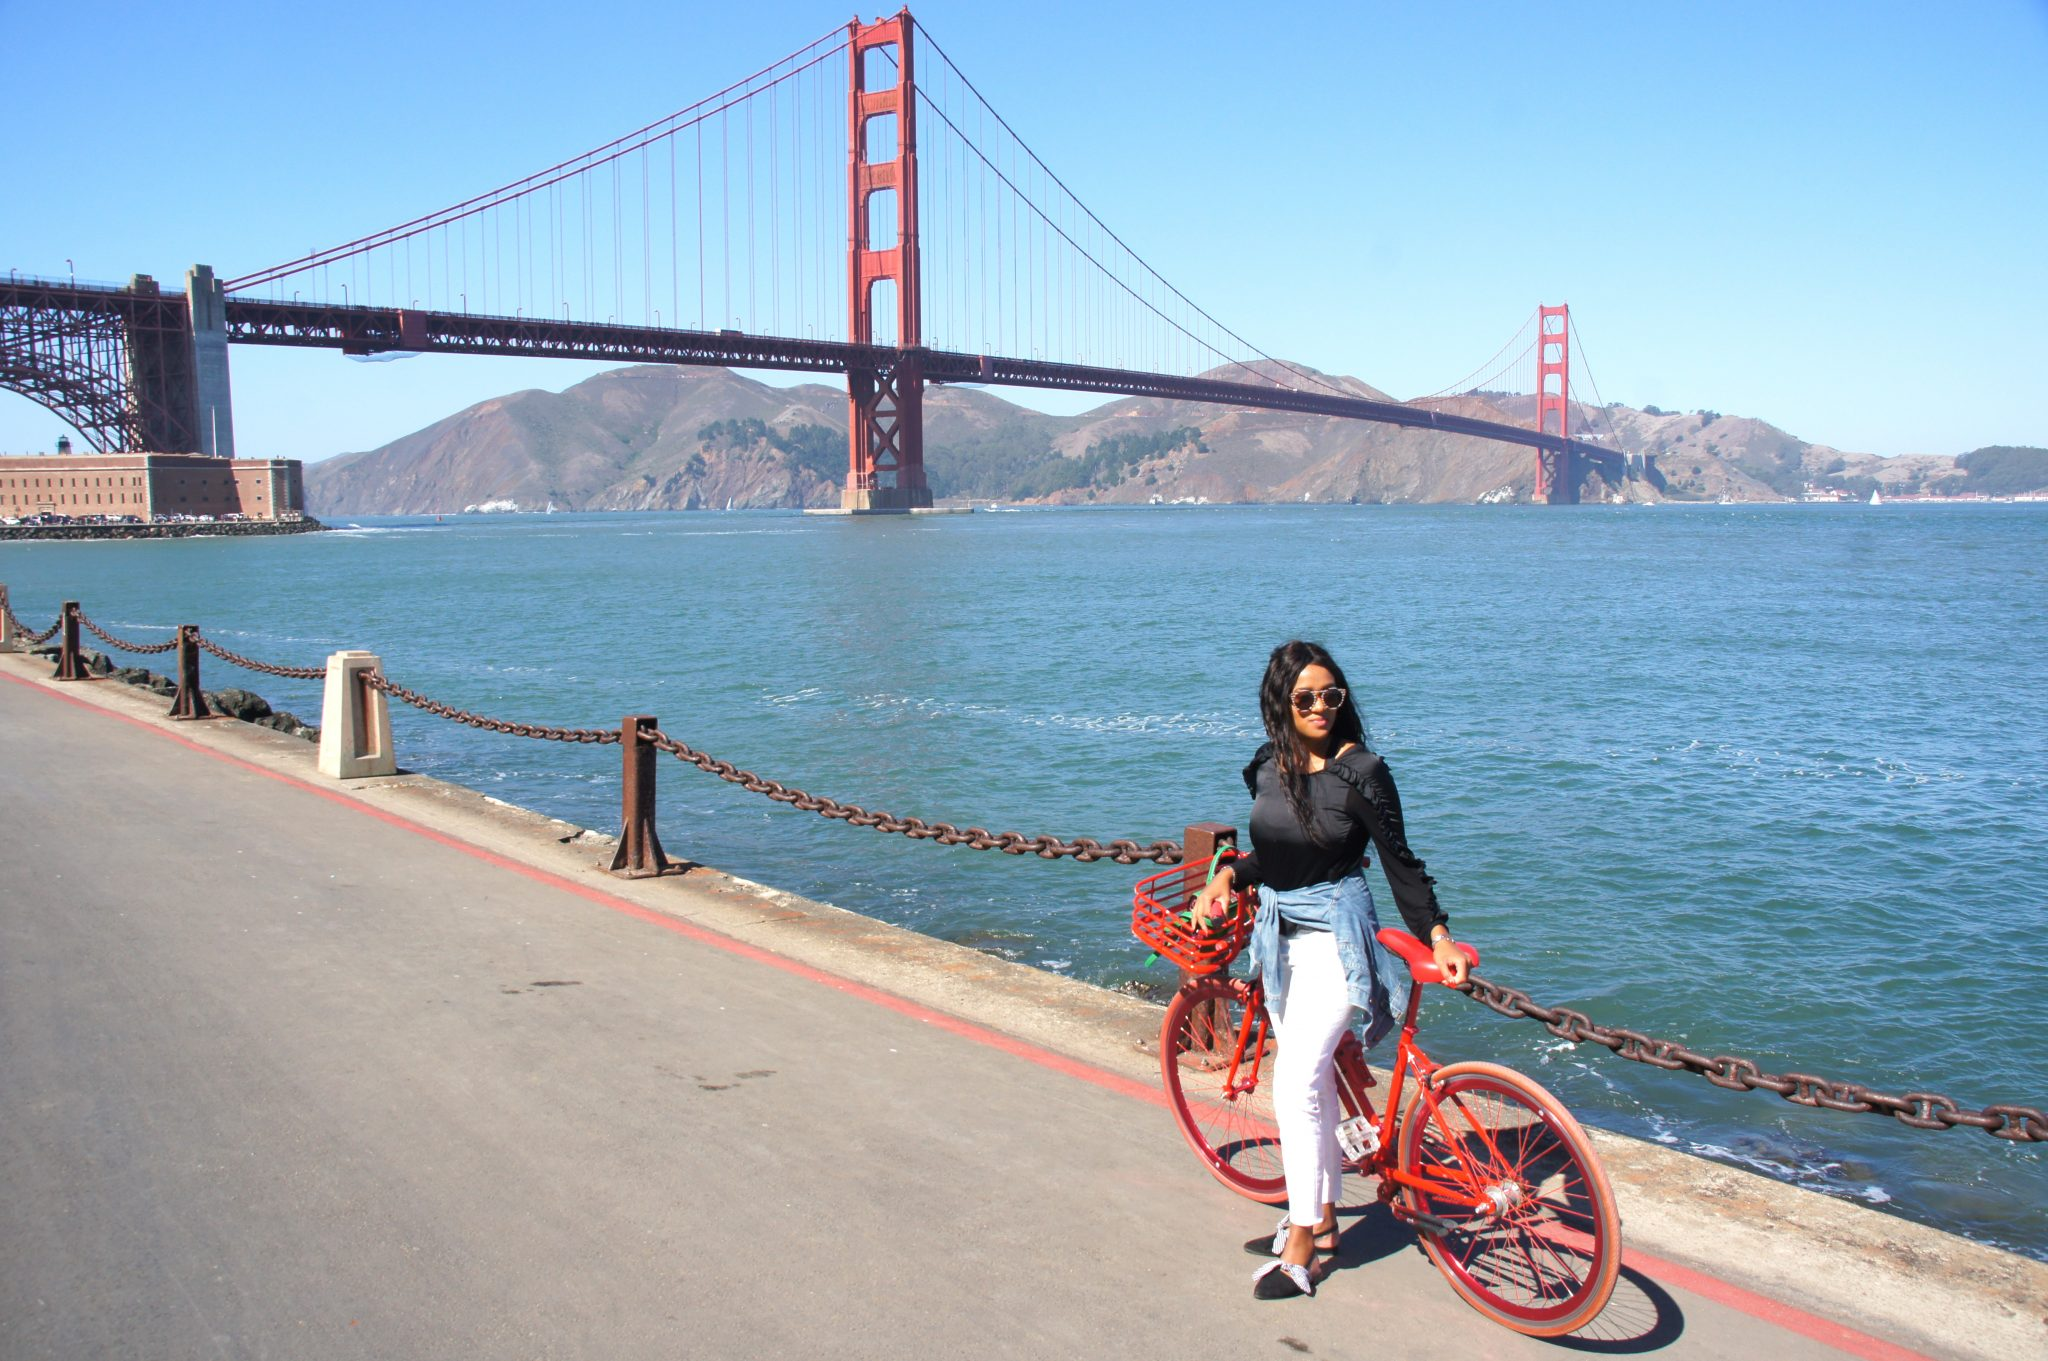 Me with bike at the Golden Gate Bridge